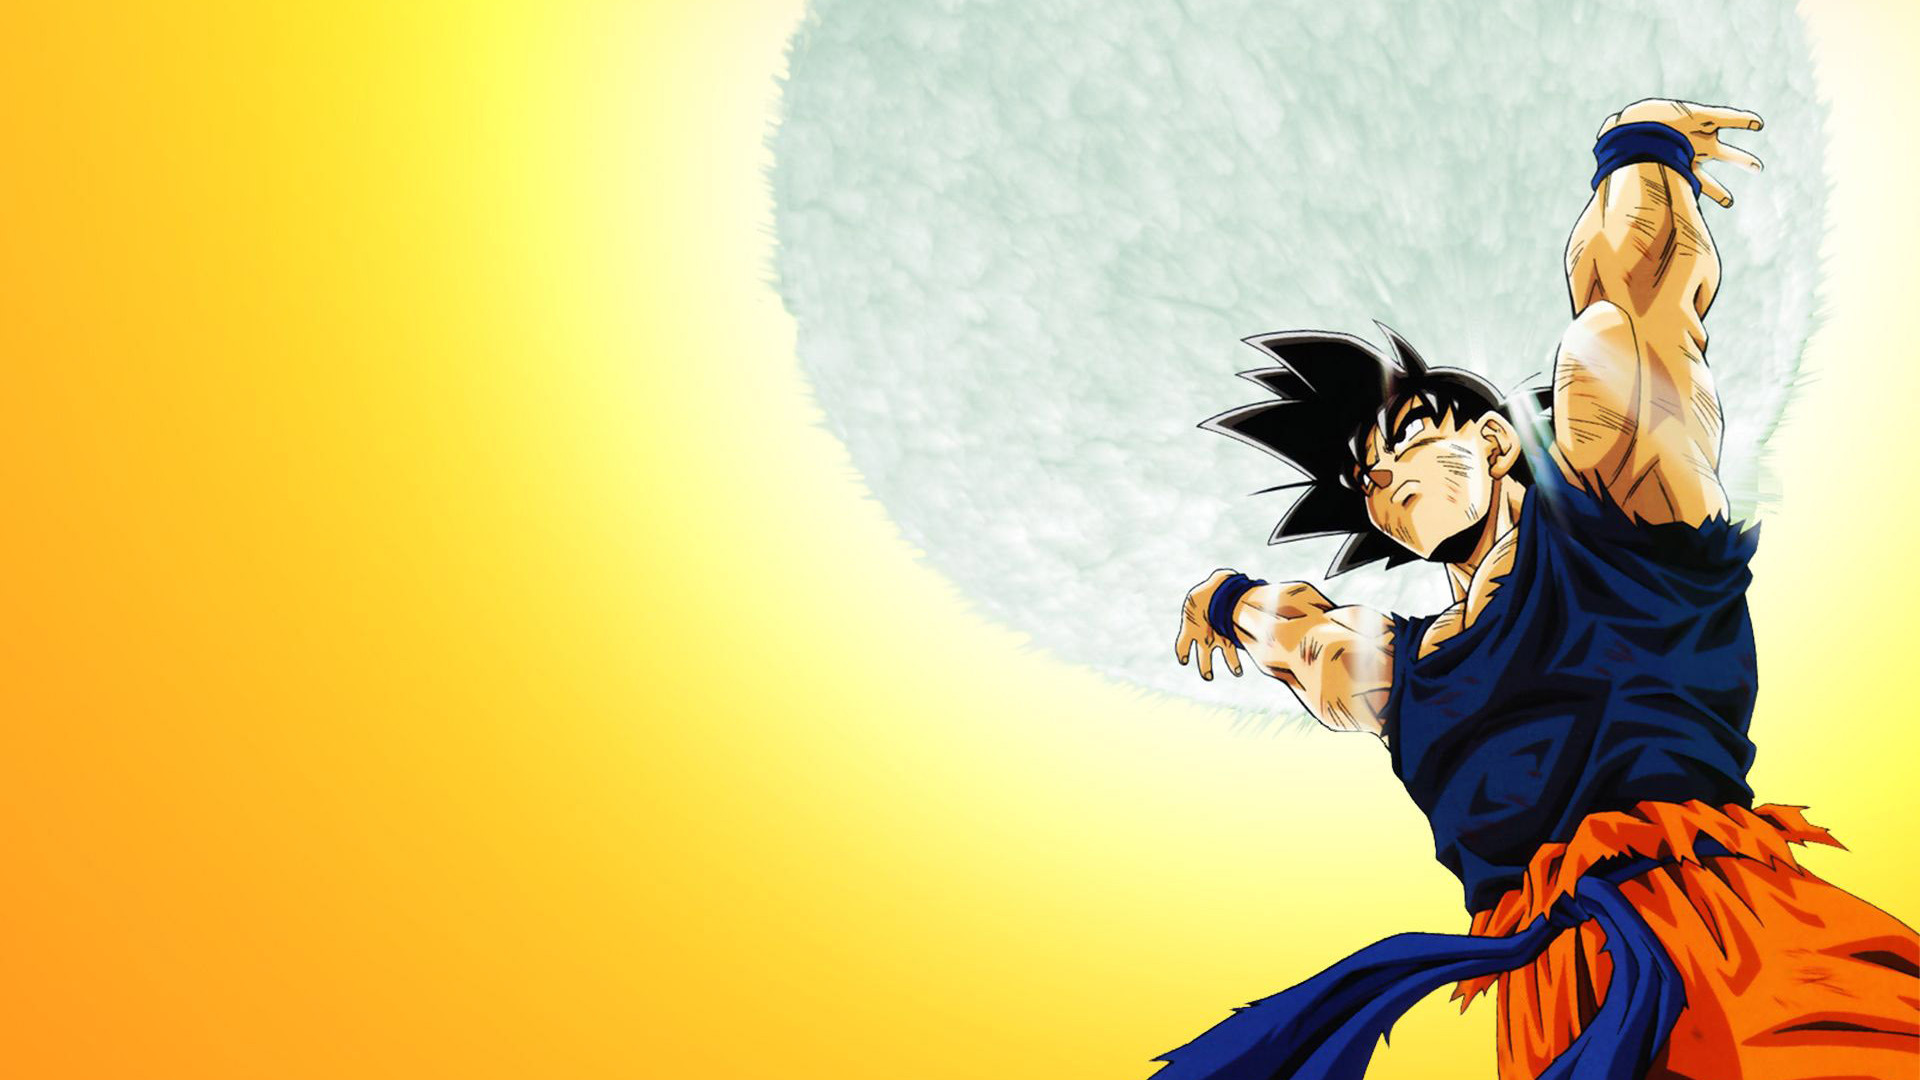 Dragon Ball Z Wallpaper Goku - WallpaperSafari